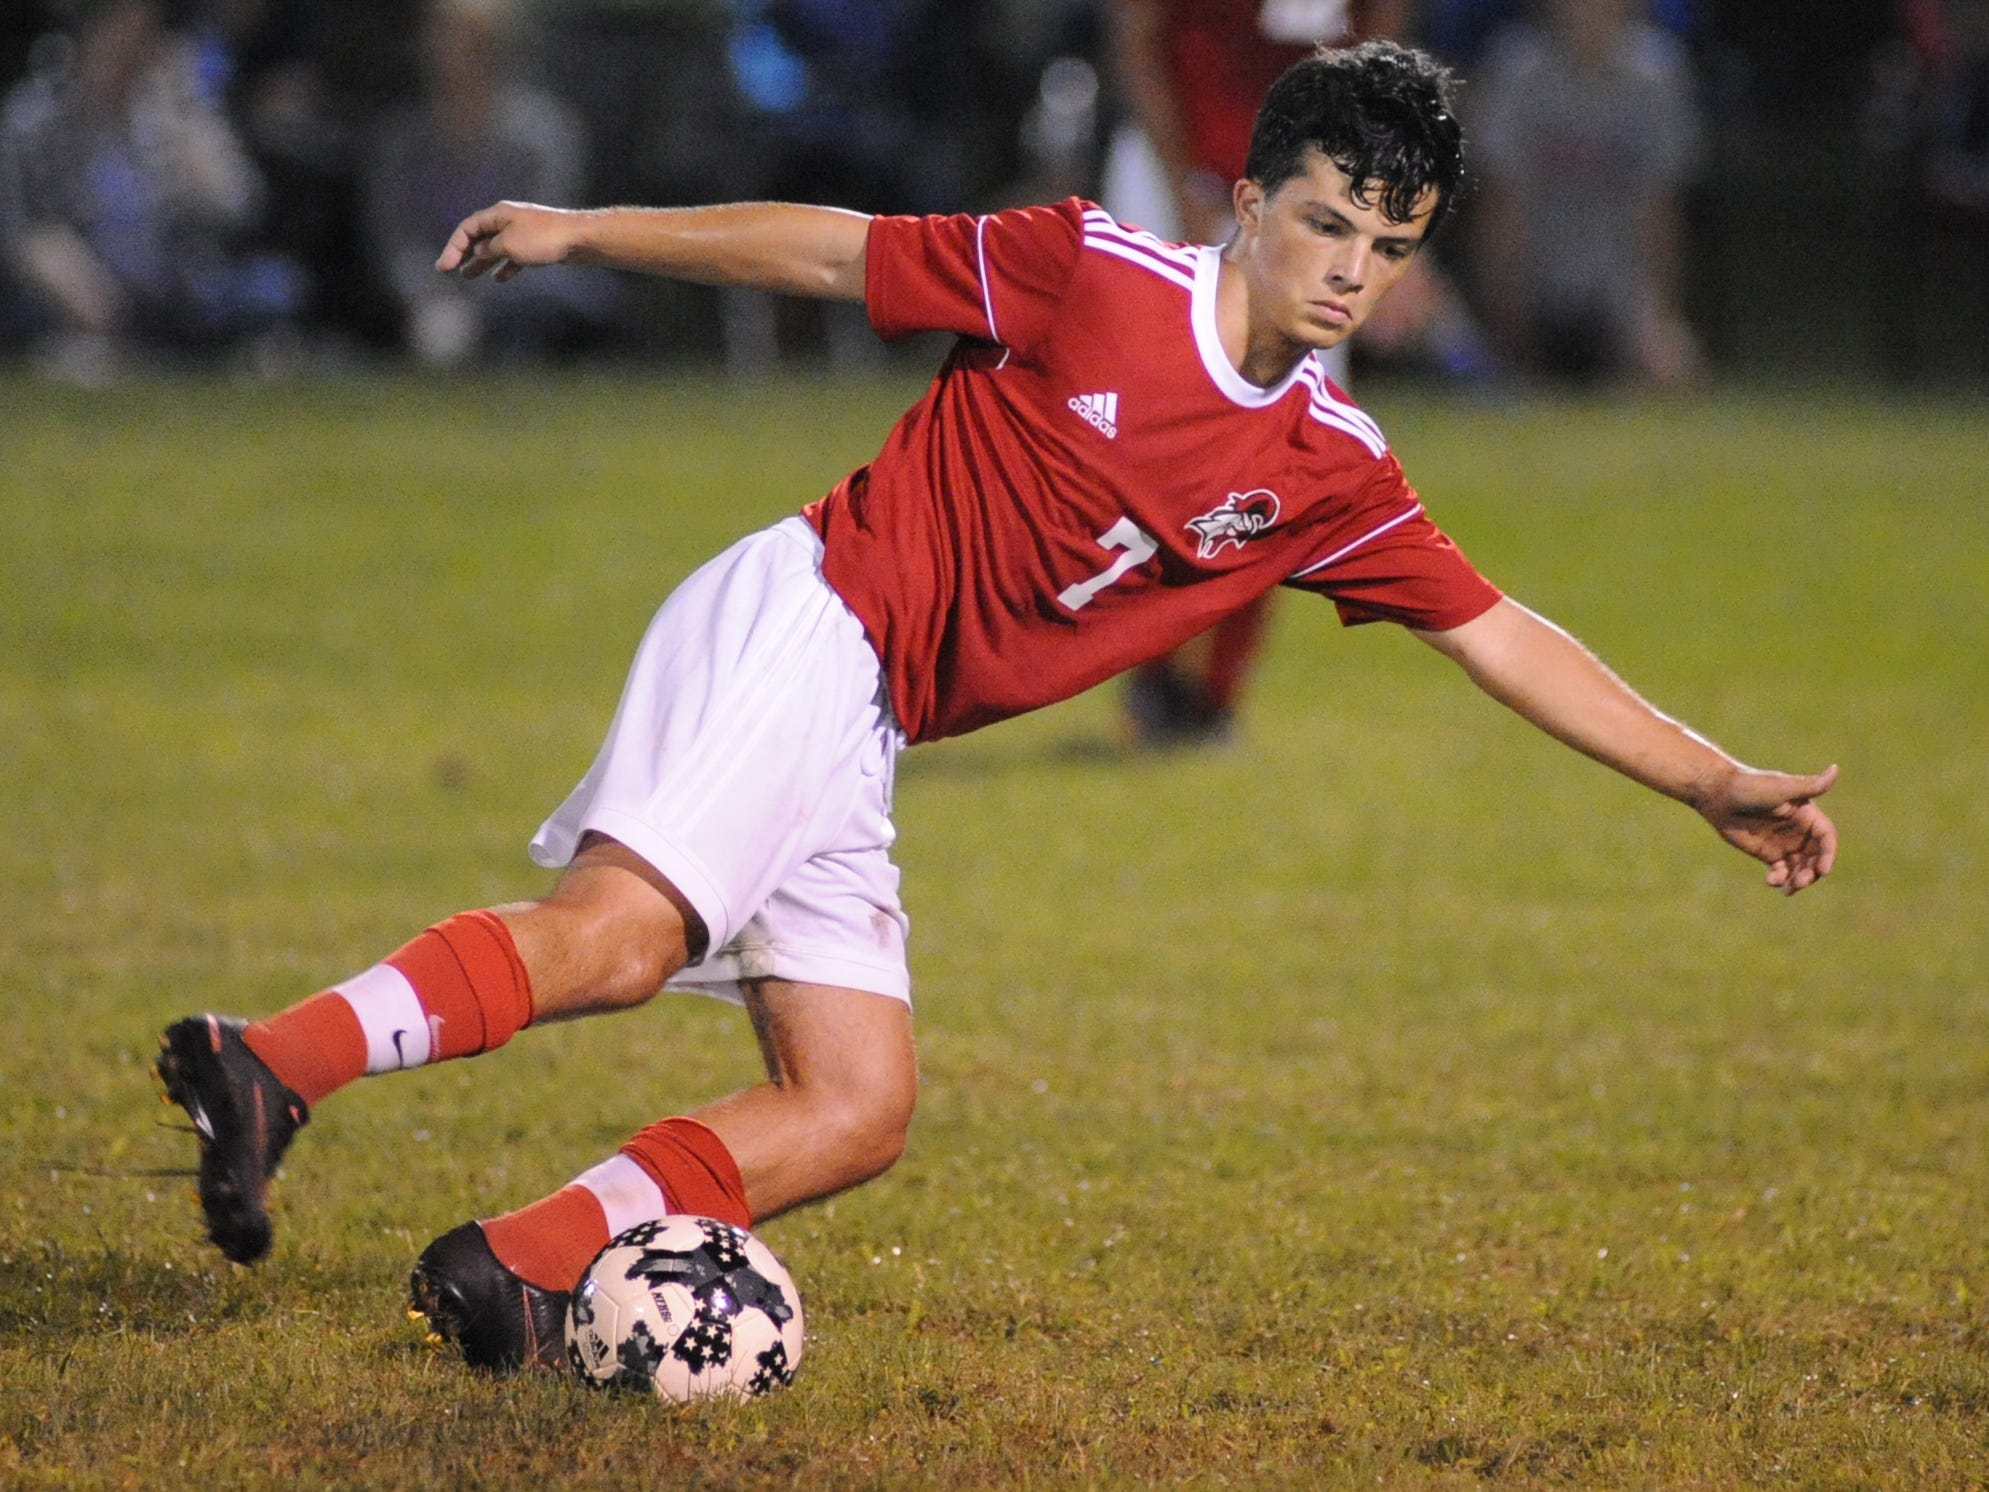 Vineland's Cameron Stahl passes the ball during a boys soccer game against Millville at Romano Sports Complex in Vineland, Monday, Sept. 17, 2018.